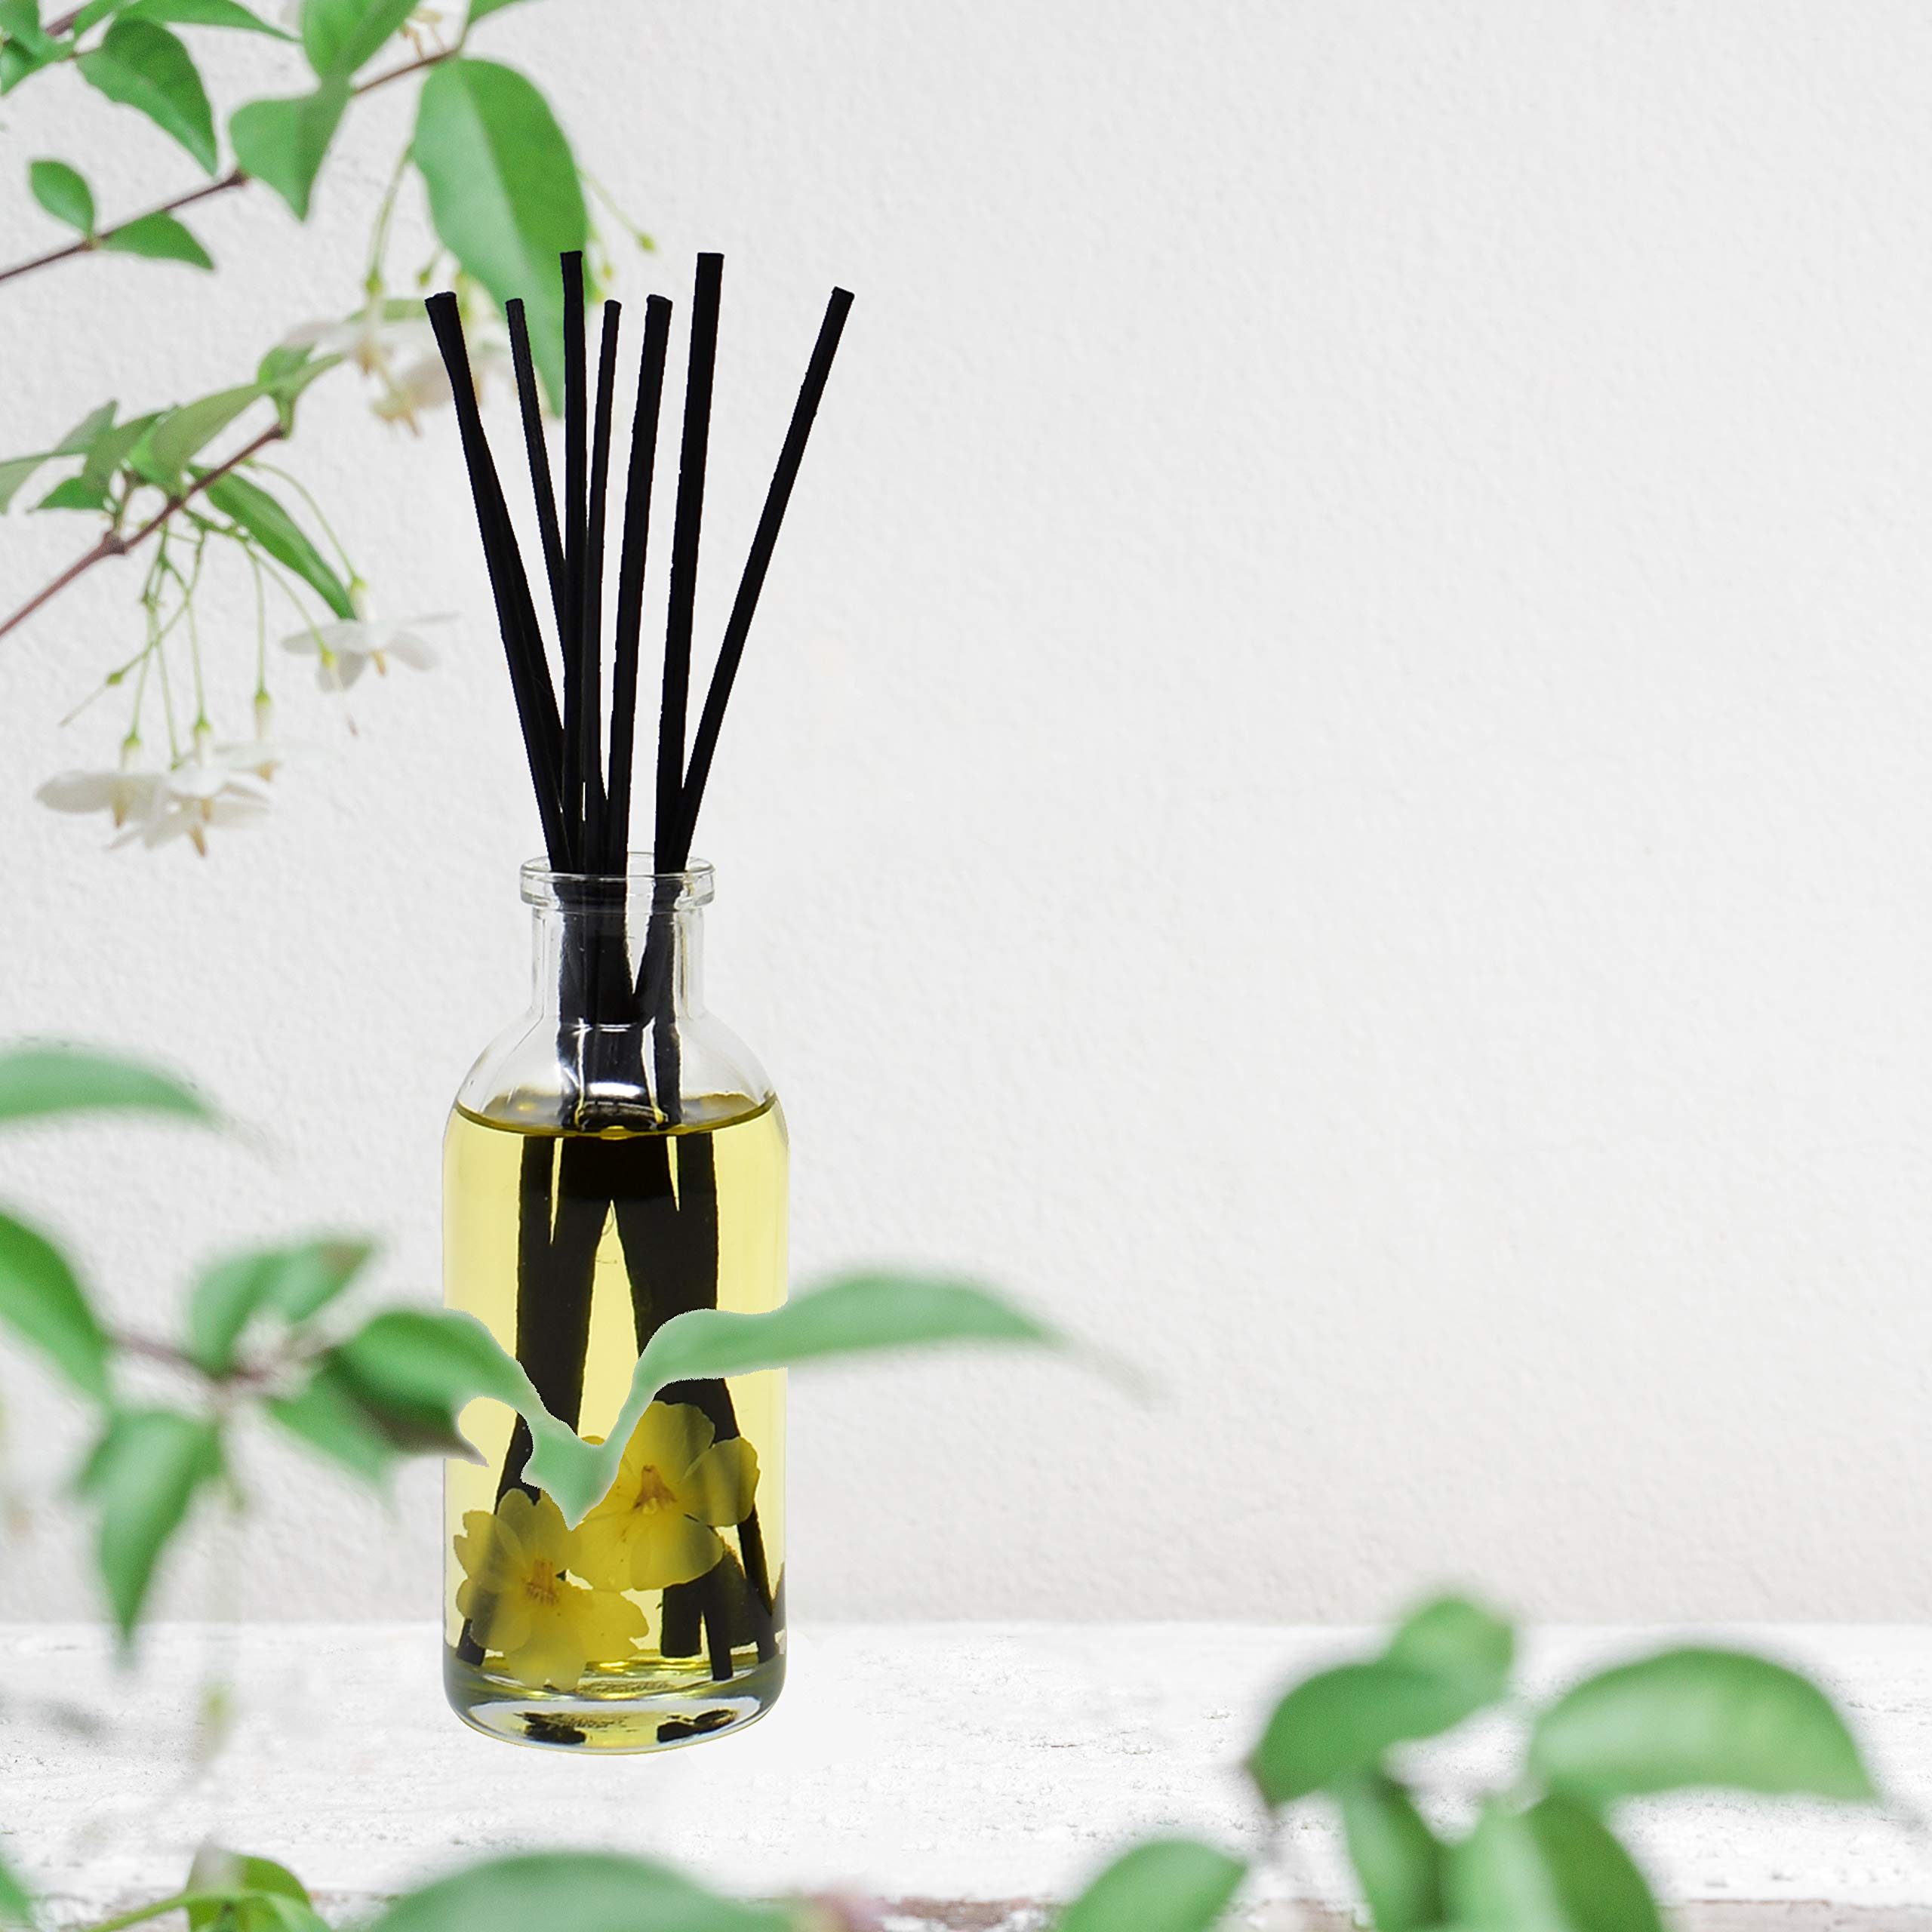 Urban Naturals Citrus & Jasmine Reed Diffuser Scented Sticks Set | (Energy + Clarity) Mind & Body Aromatherapy Collection | Essential Oil Botanical Room Scent | Liquid Potpourri Alternative by Urban Naturals (Image #7)